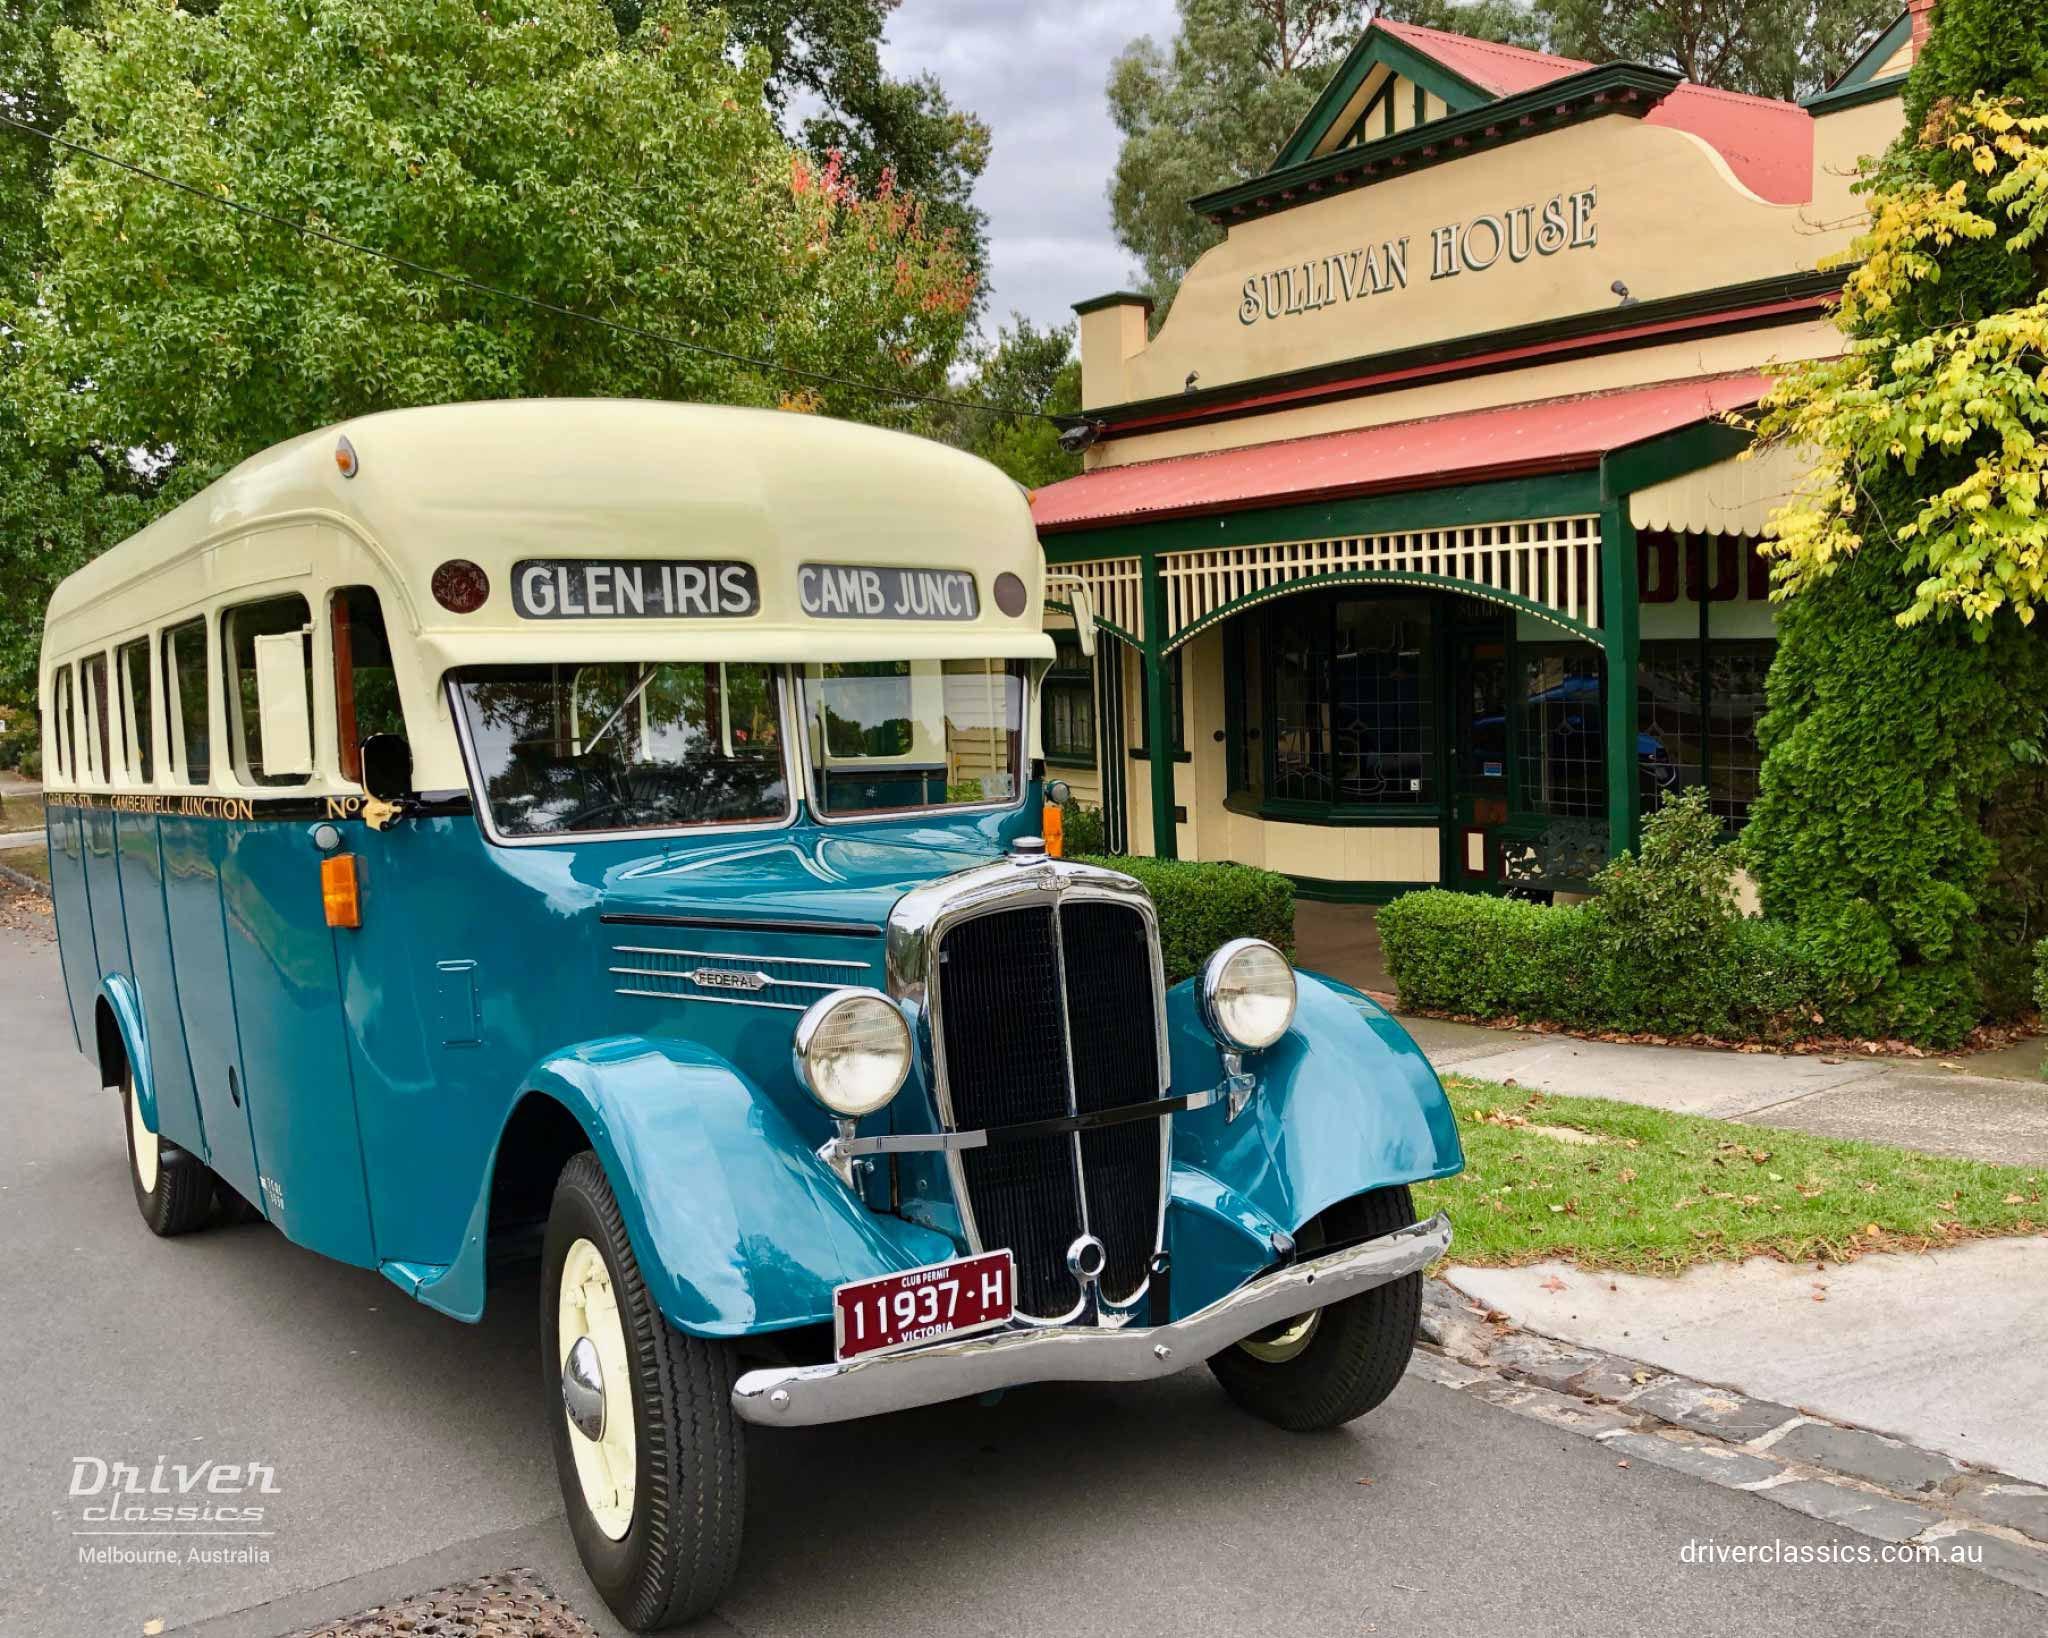 Federal Bus (1936 version), outside Sullivans shop from The Sullivans TV Series, photo taken April 2019